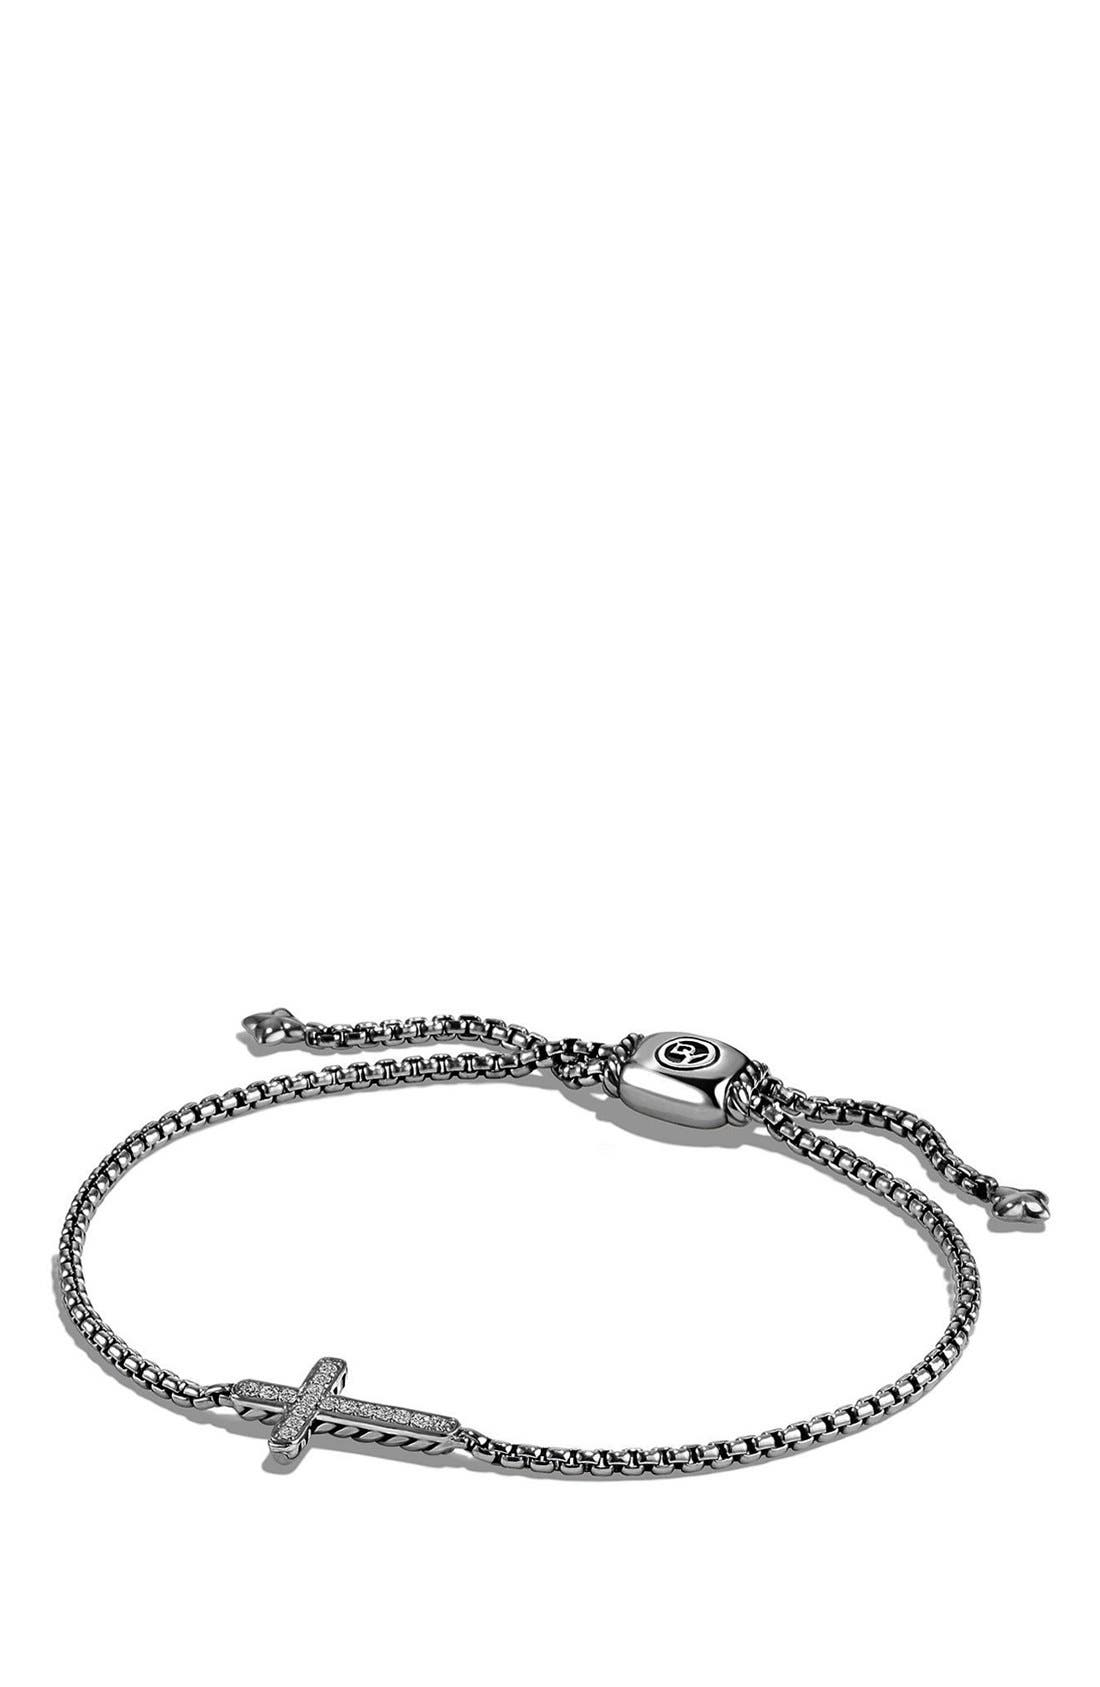 David Yurman 'Petite Pavé' Cross Bracelet with Diamonds